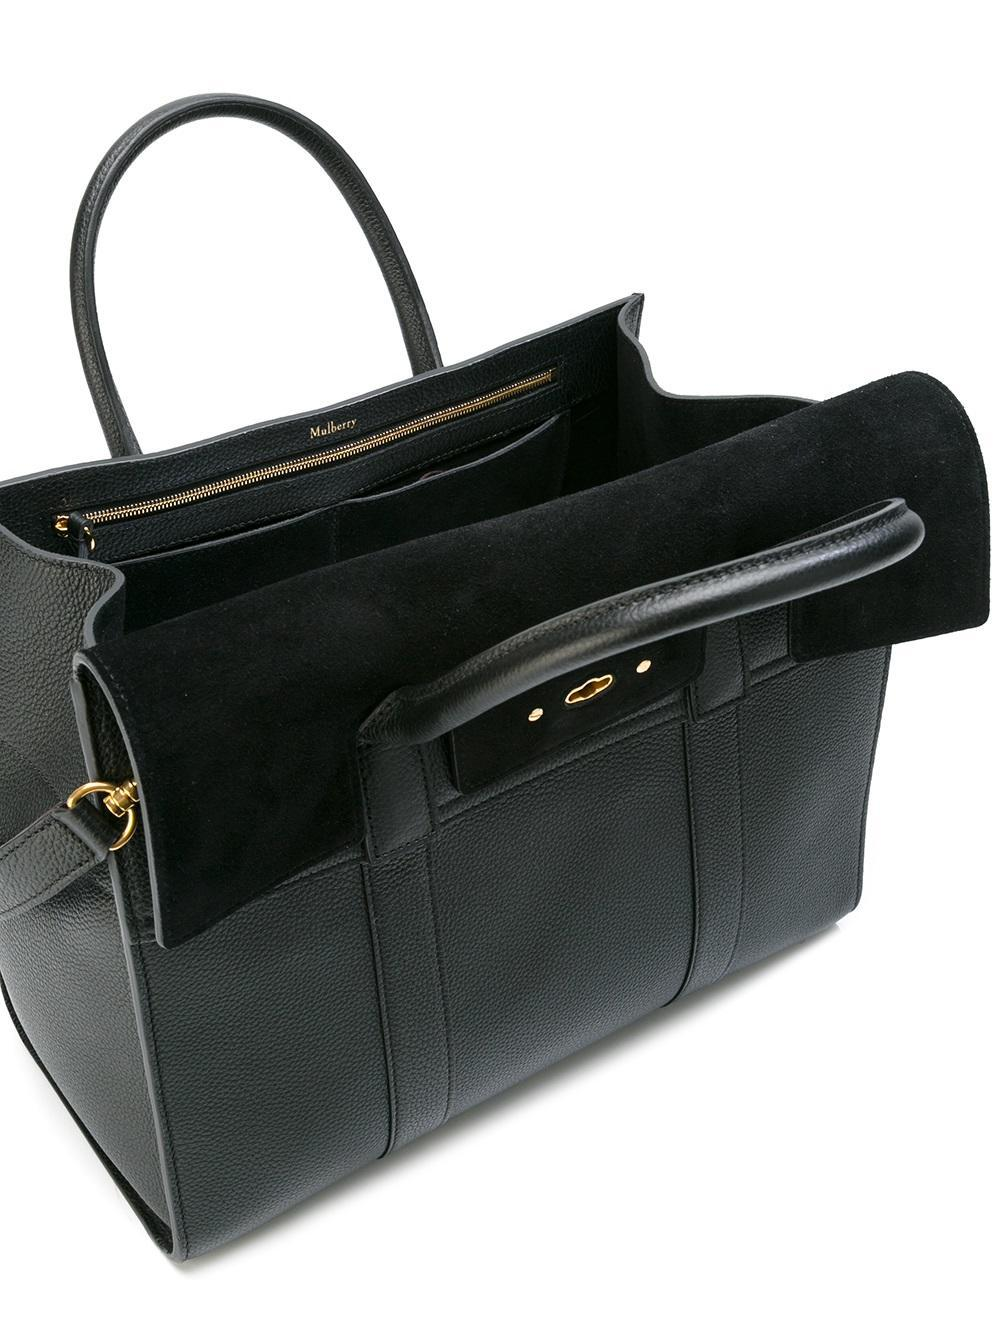 83a64a34beb3 Lyst - Mulberry Fold-over Closure Tote in Black